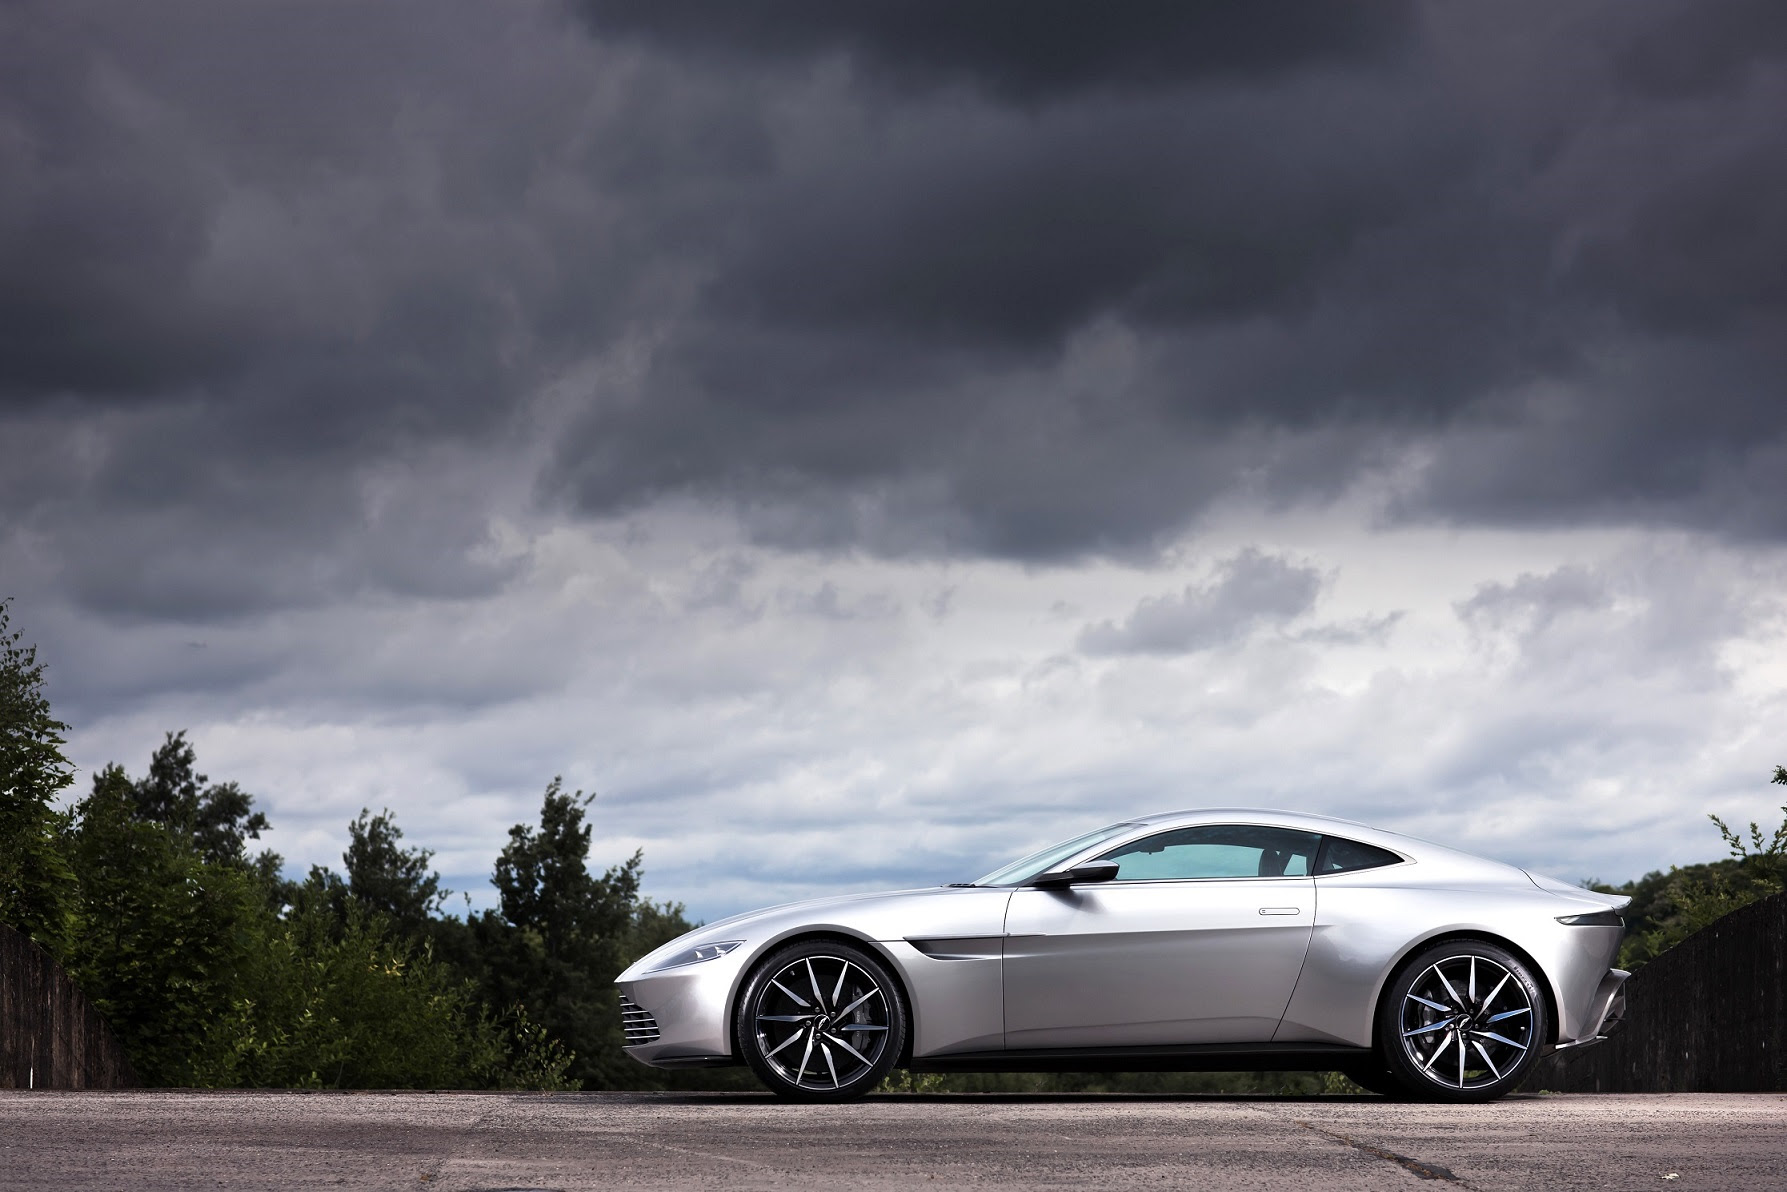 James Bond S Aston Martin Db10 Just Sold For 3 5 Million Fortune